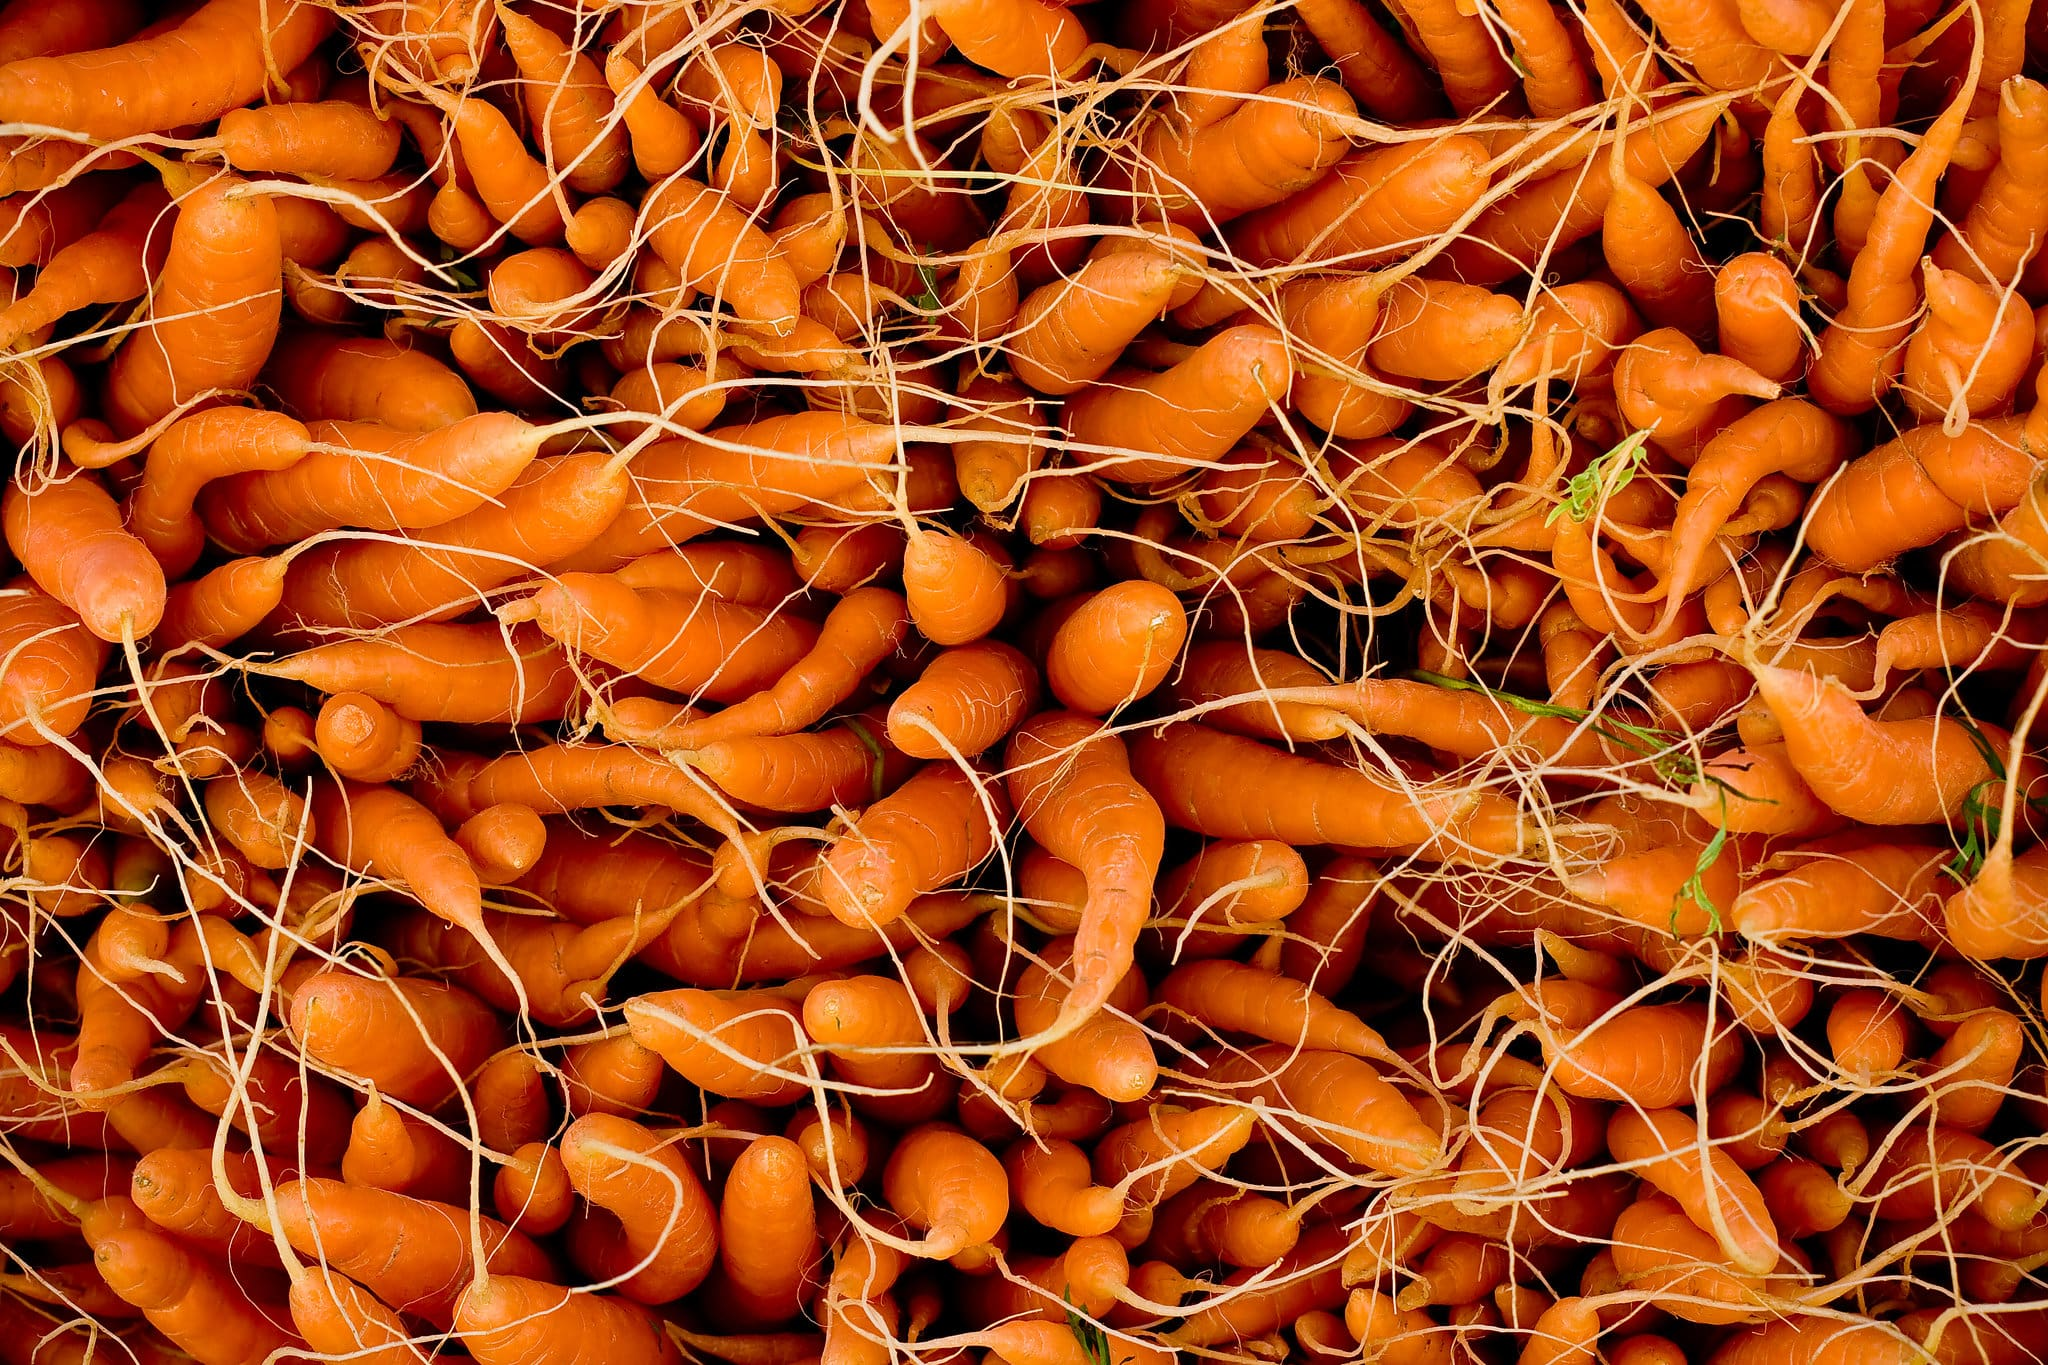 Carrots - Daniel Berman Photograhy